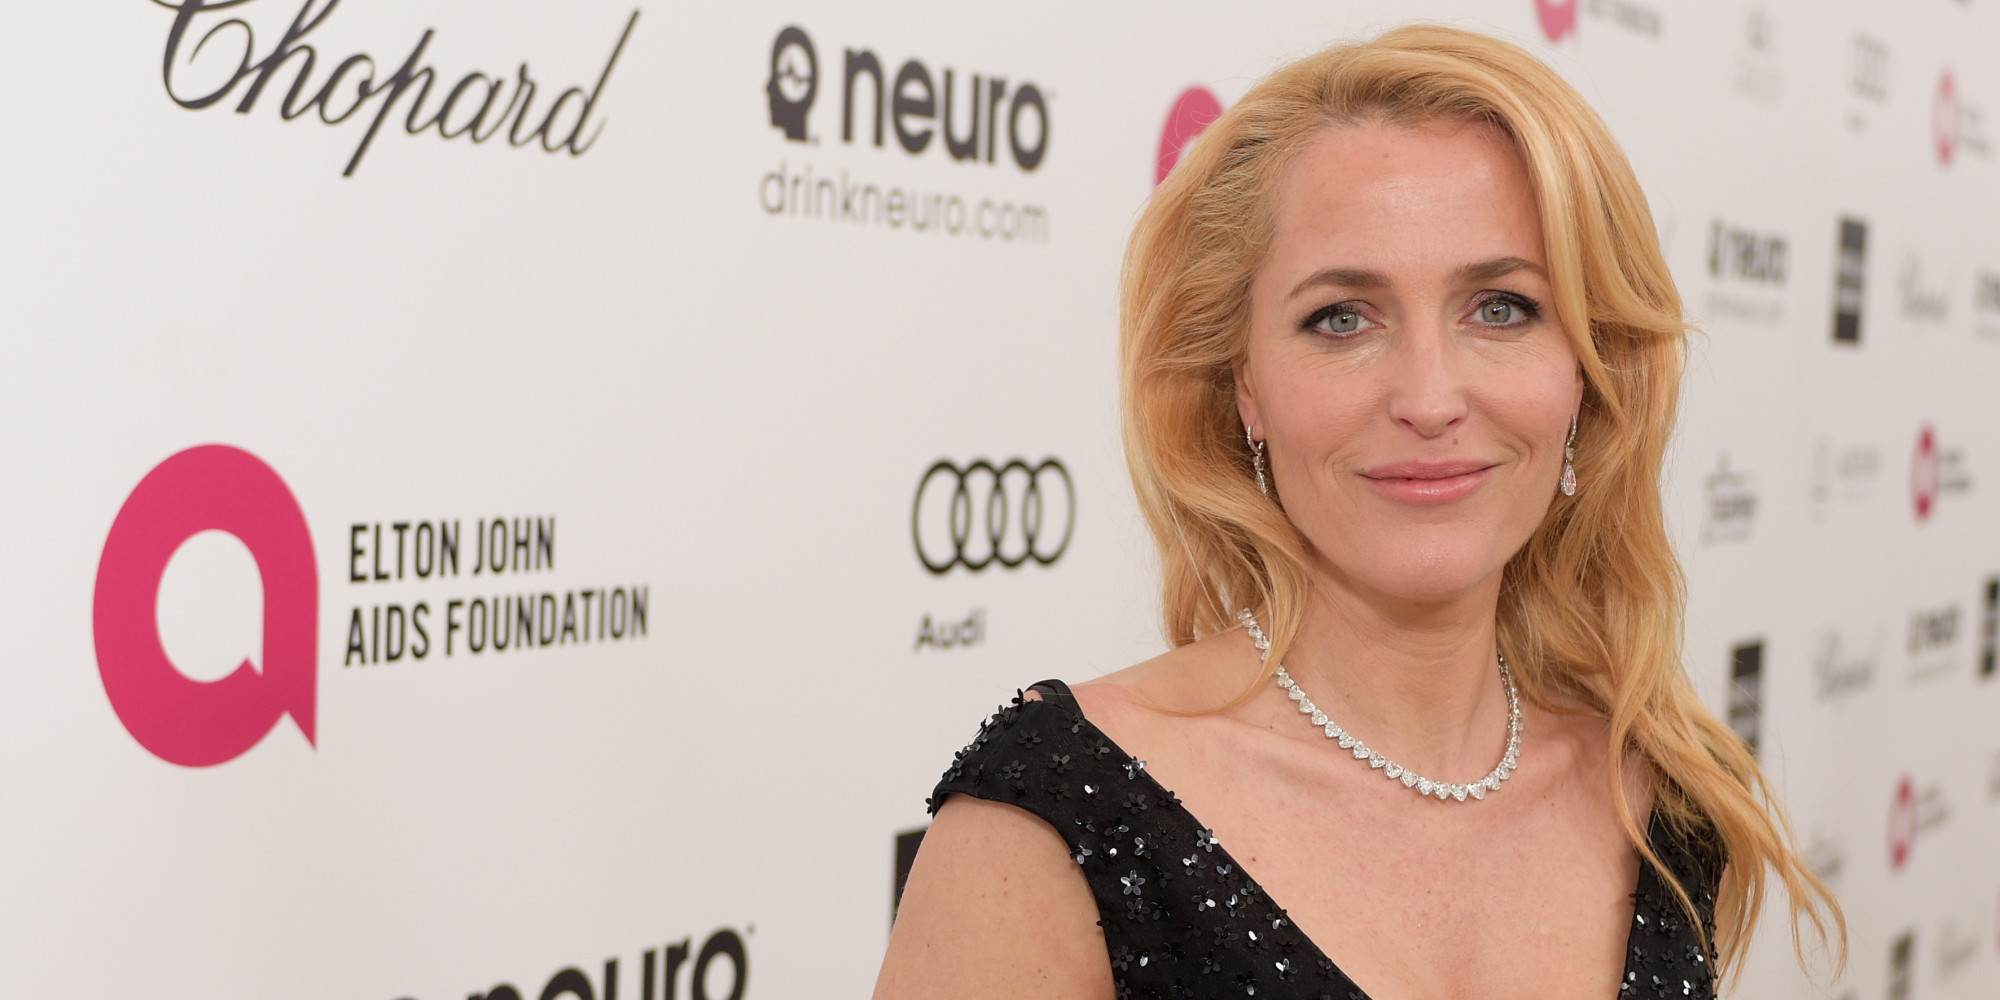 LOS ANGELES, CA - FEBRUARY 22: Actress Gillian Anderson attends the 23rd Annual Elton John AIDS Foundation Academy Awards viewing party with Chopard on February 22, 2015 in Los Angeles, California. (Photo by Stefanie Keenan/Getty Images for Chopard)